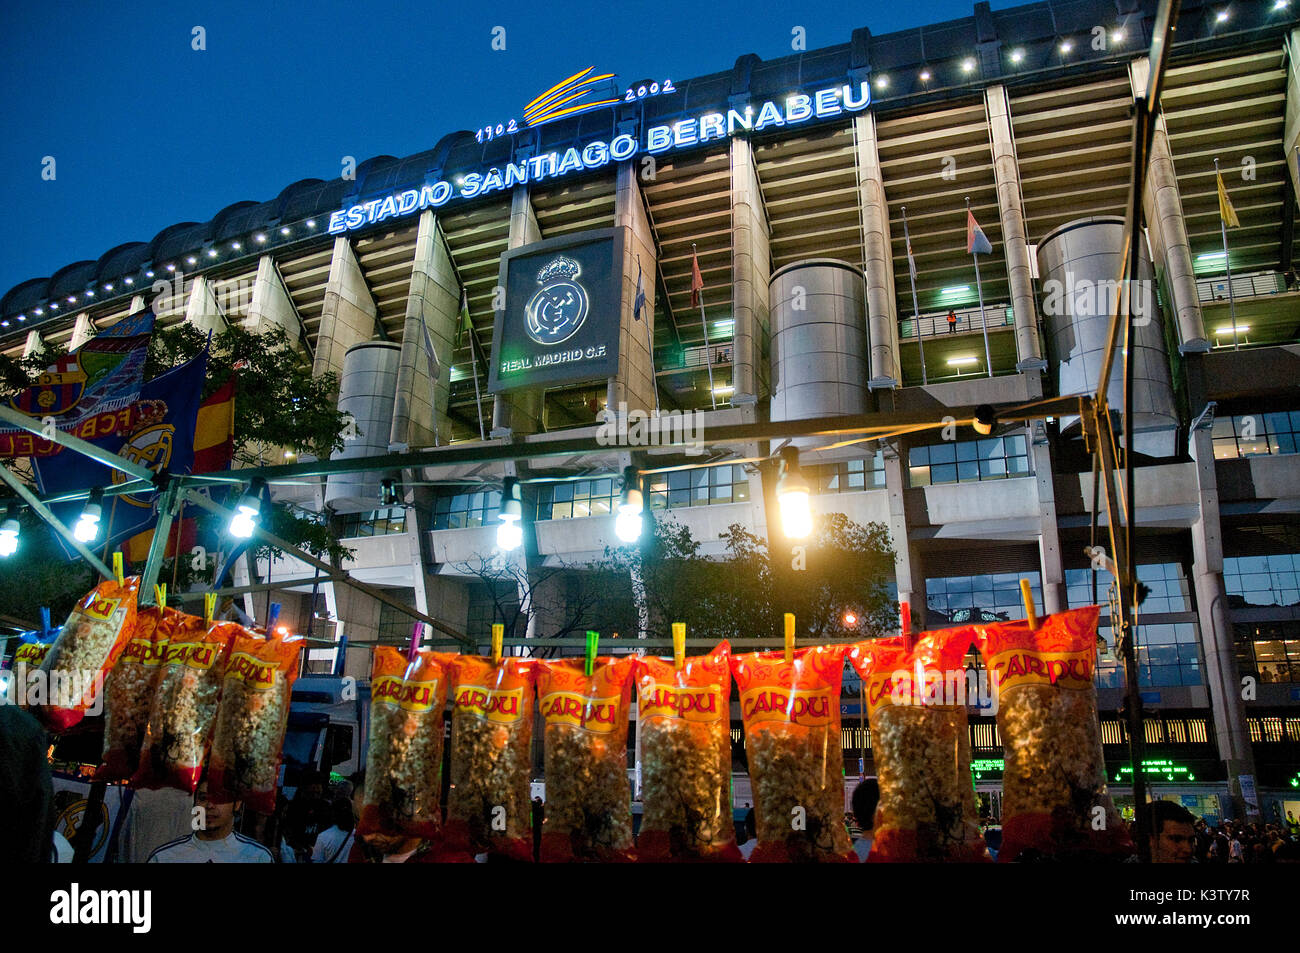 Vendor stall and atmosphere before Real Madrid-Barcelona football match. Santiago Bernabeu stadium, Madrid, Spain. - Stock Image